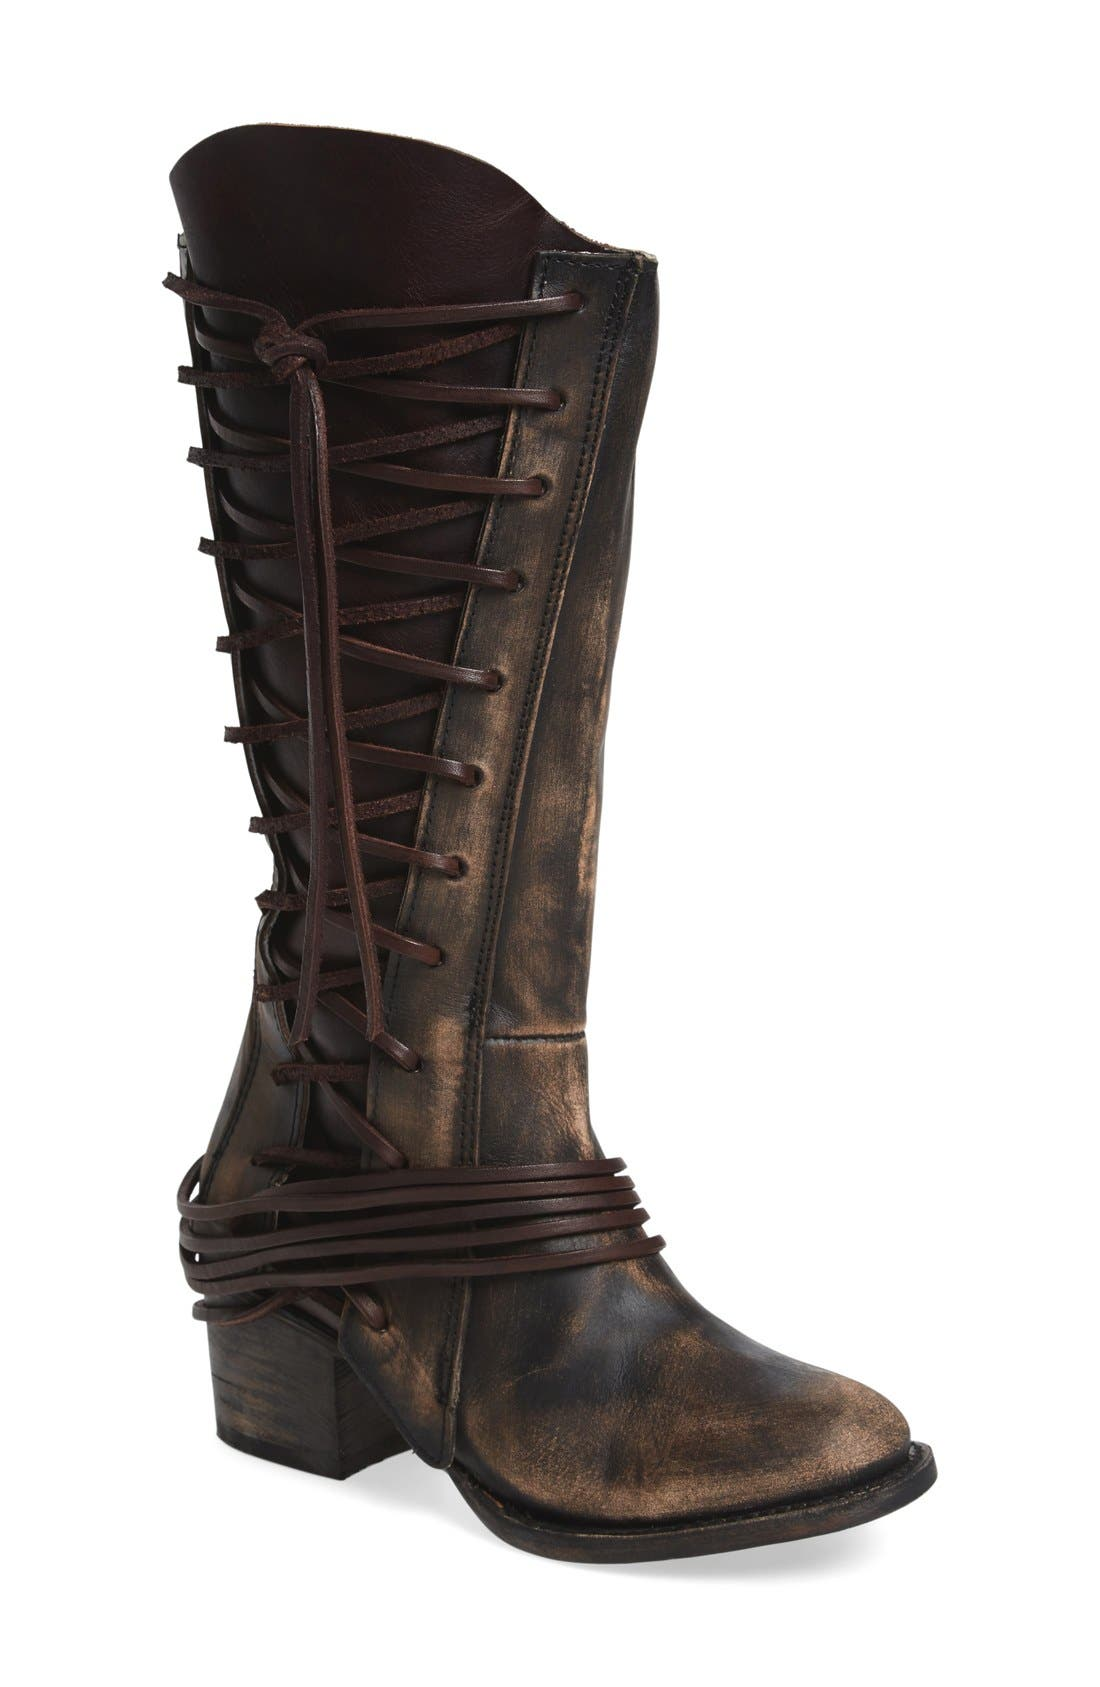 'Cash' Tall Boot,                             Main thumbnail 1, color,                             Brown Multi Leather